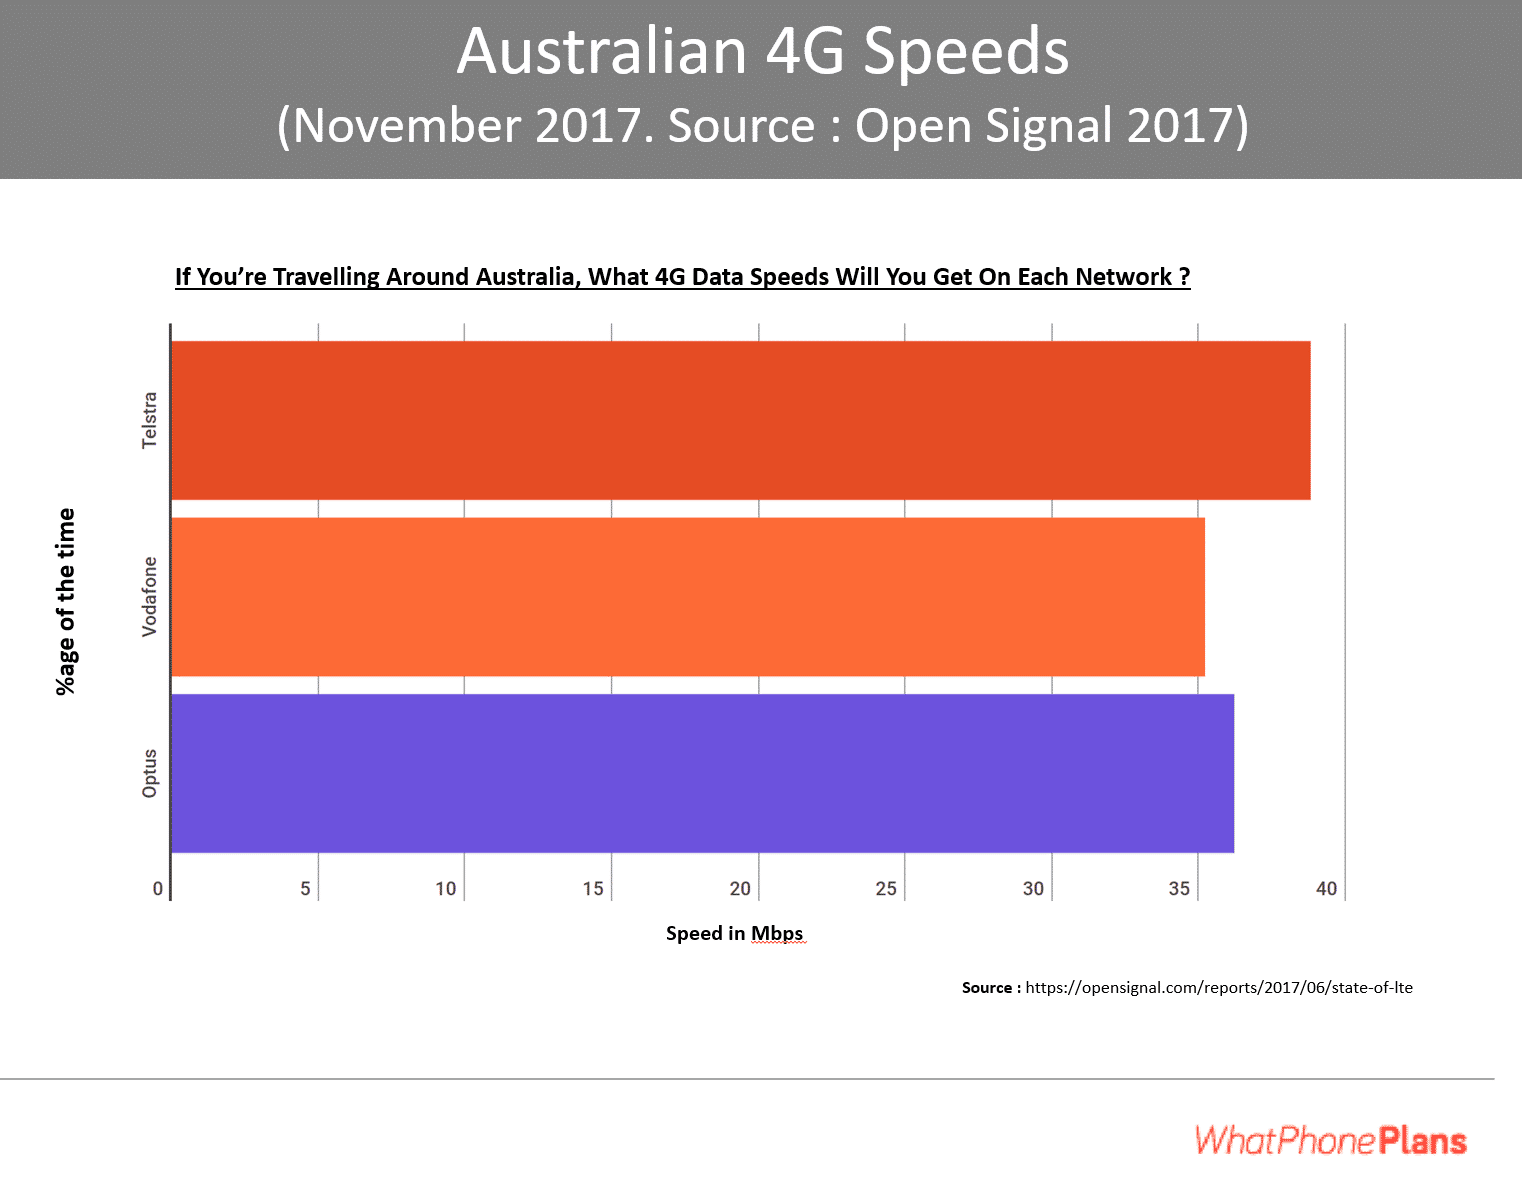 Australian coverage 2018 update : Comparing Telstra, Optus and Vodafone 4G speeds